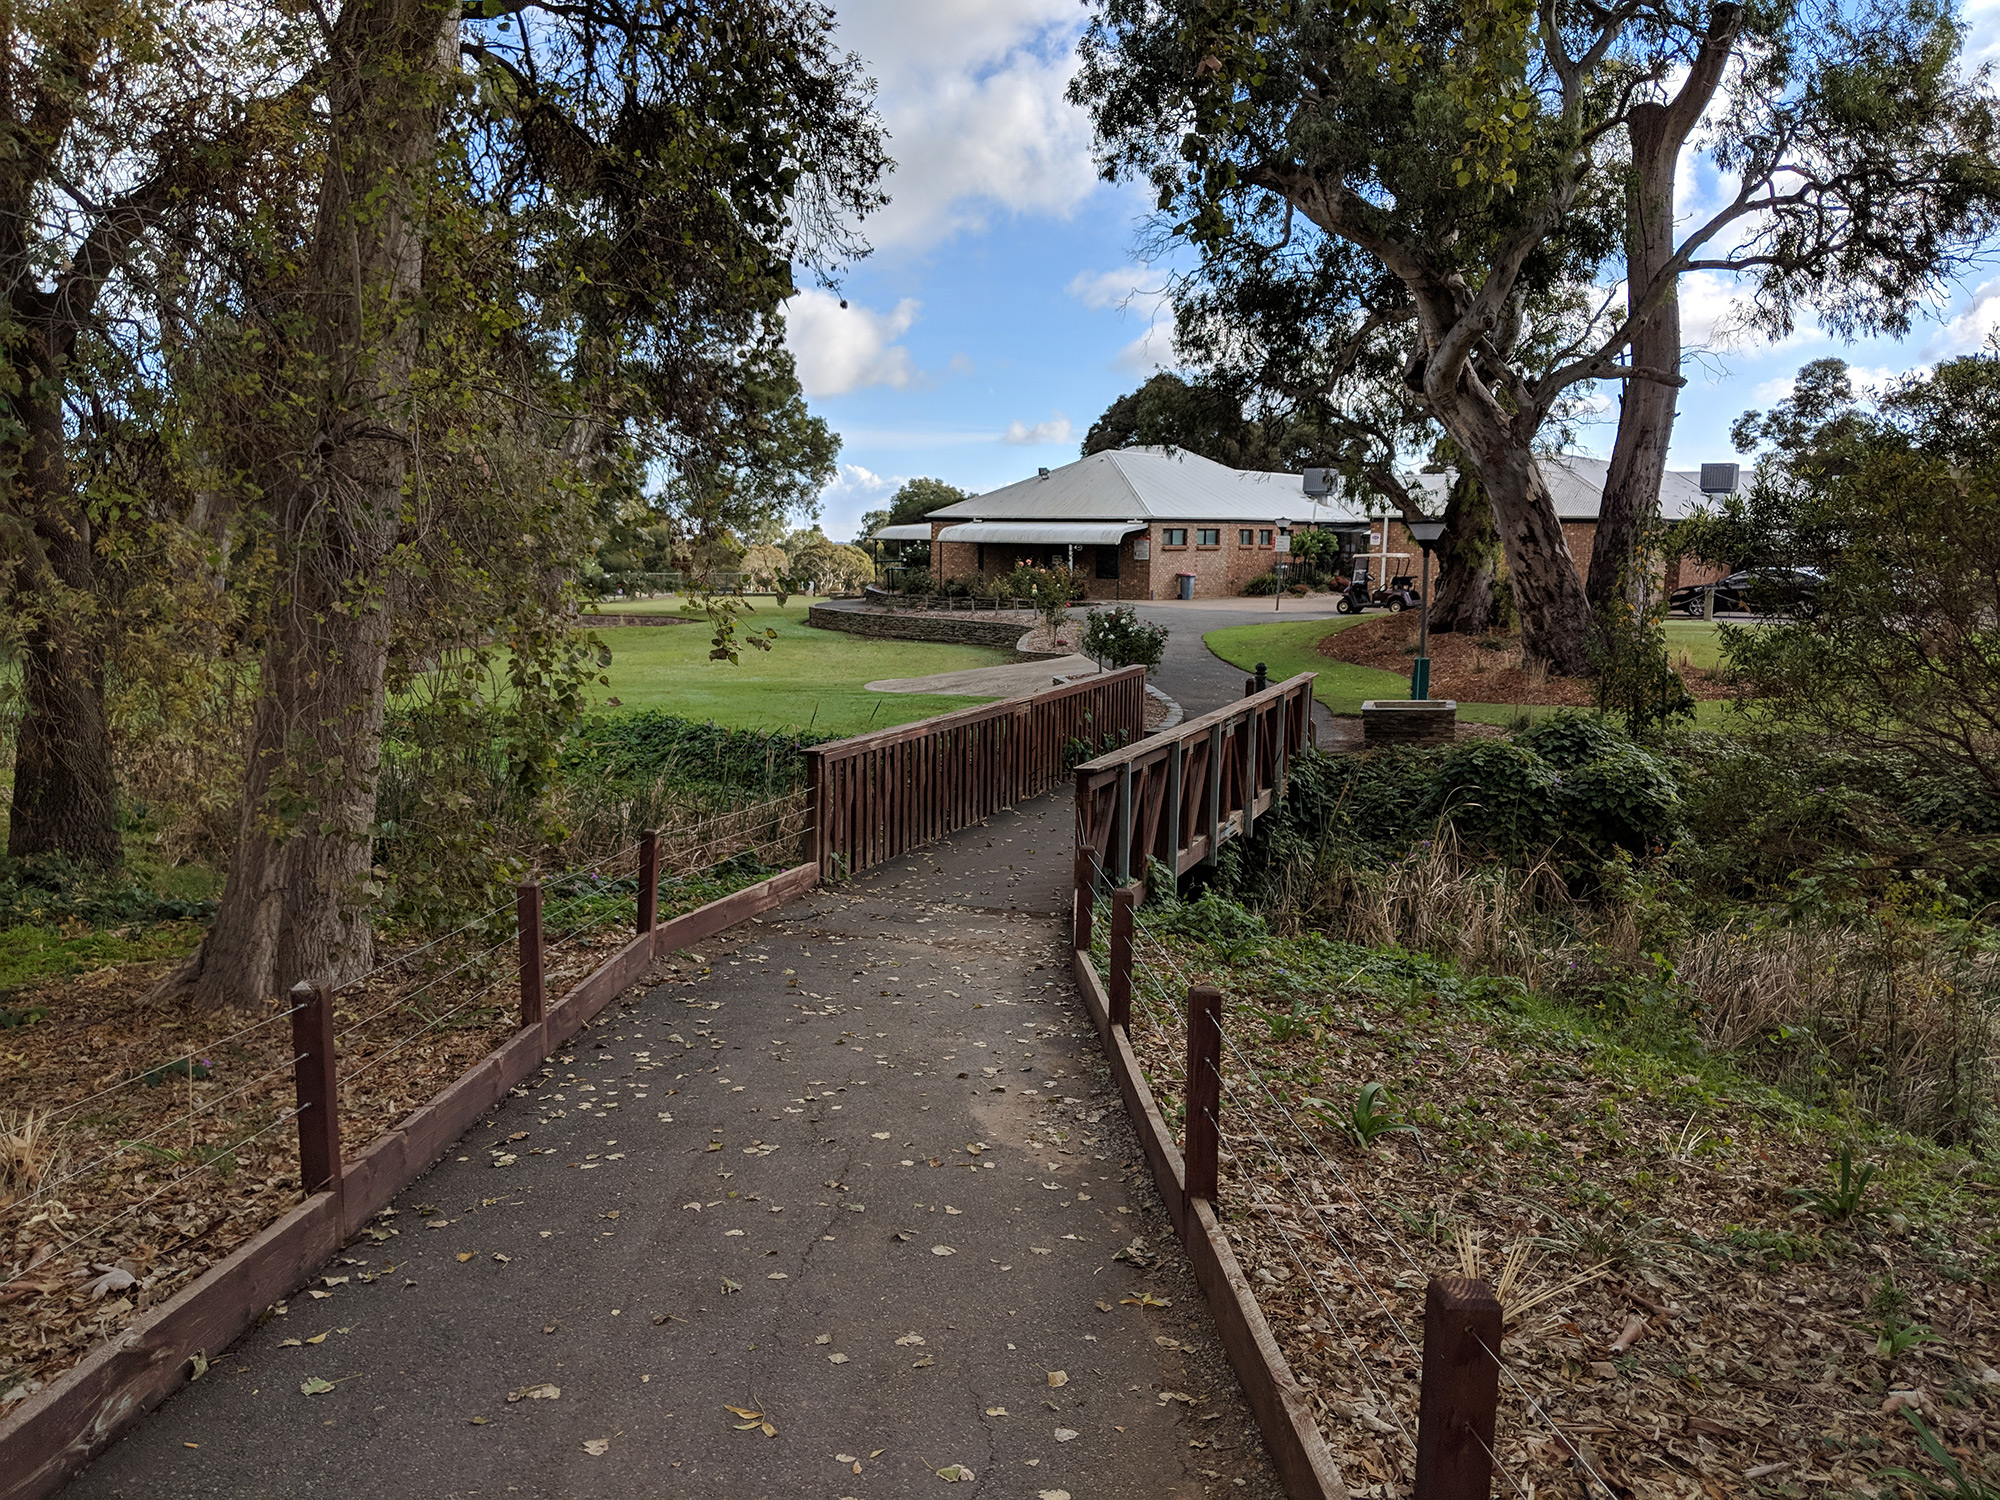 Path to the clubhouse